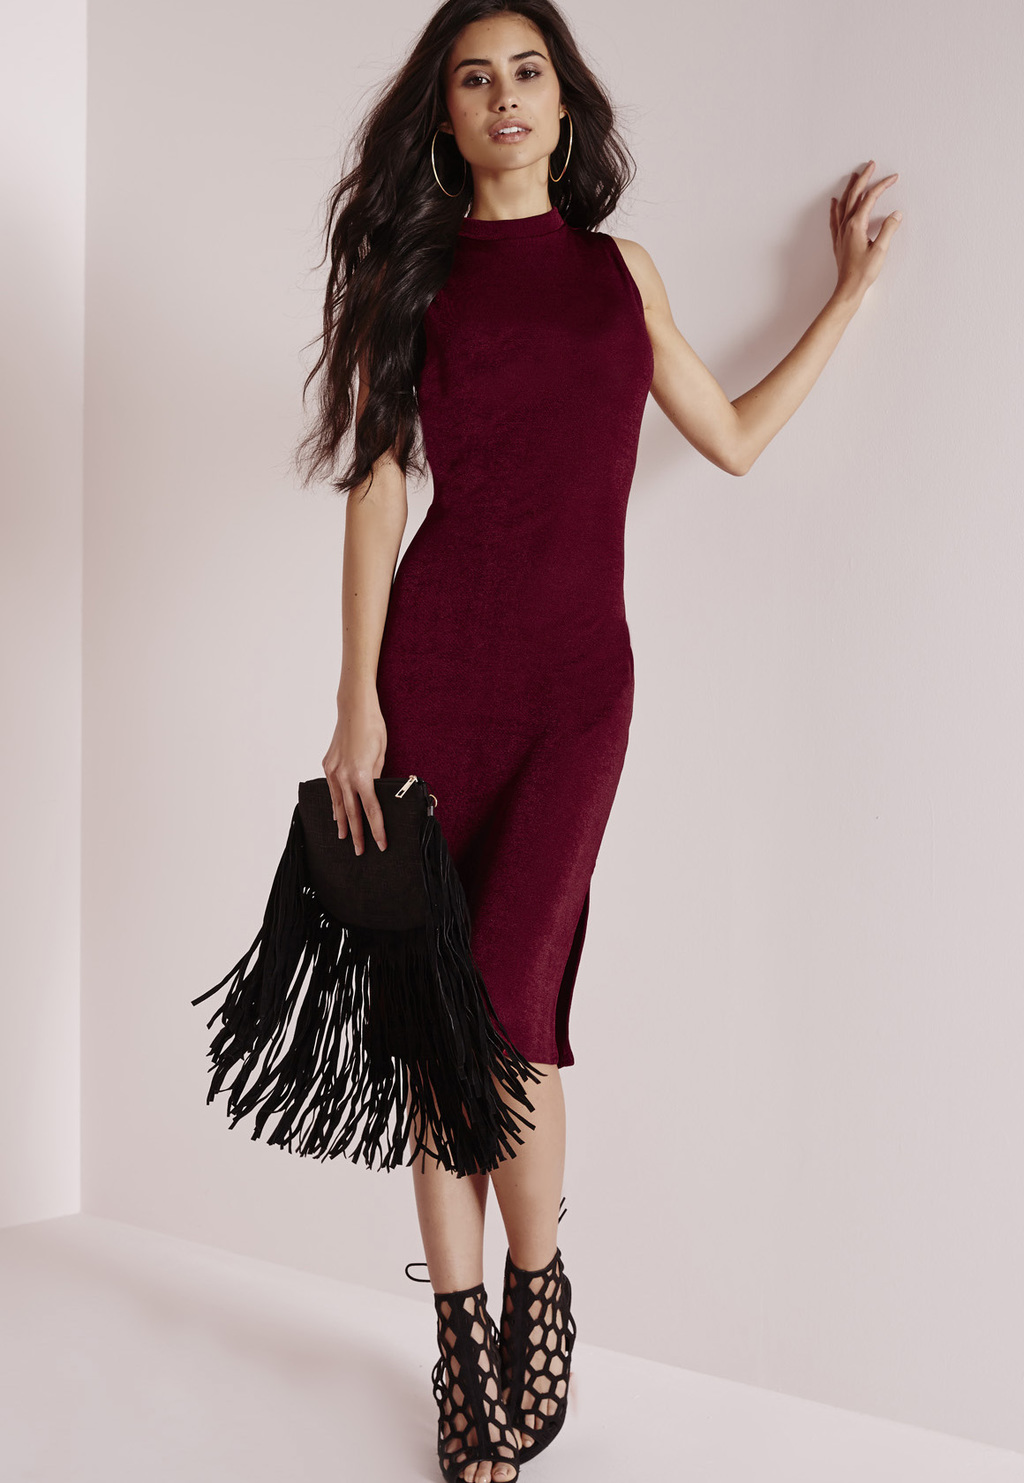 High Neck Knitted Midi Dress Burgundy, Burgundy - style: shift; length: below the knee; fit: tight; pattern: plain; sleeve style: sleeveless; neckline: high neck; predominant colour: burgundy; occasions: evening; fibres: polyester/polyamide - stretch; sleeve length: sleeveless; pattern type: knitted - fine stitch; texture group: jersey - stretchy/drapey; season: a/w 2015; wardrobe: event